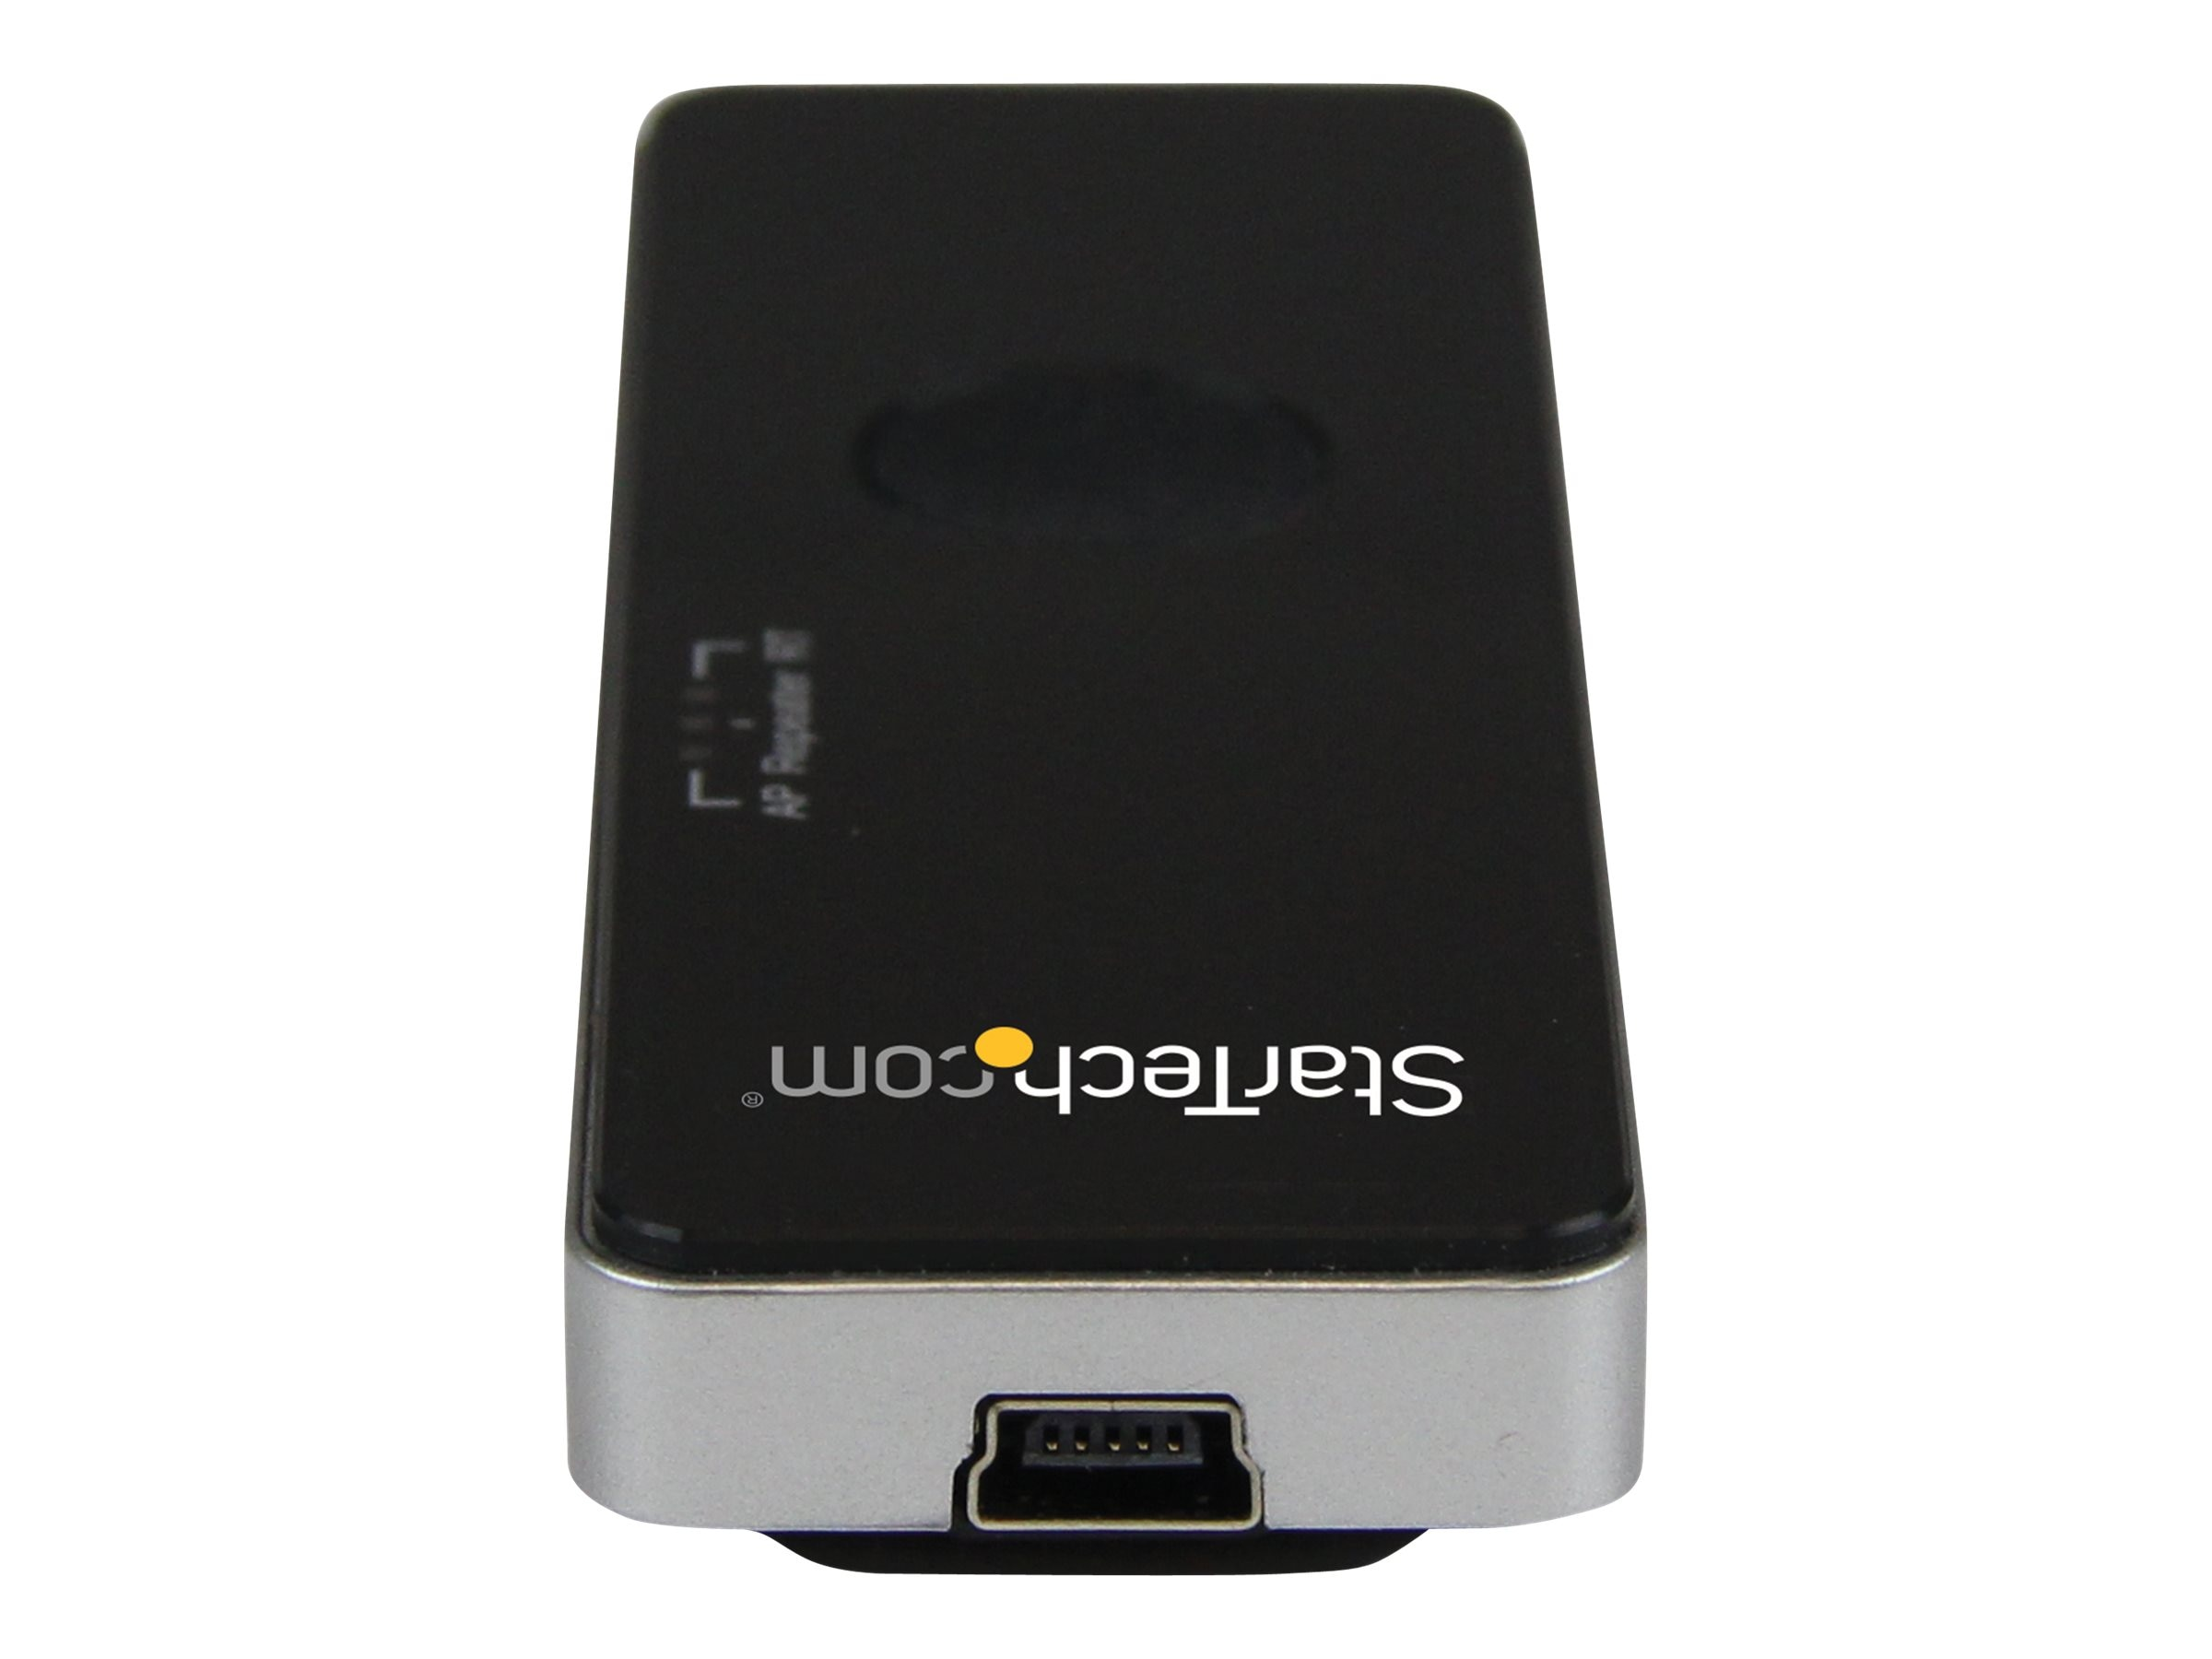 StarTech.com Portable Wireless N WiFi Travel Router Access Point Repeater, AP150WN1X1U